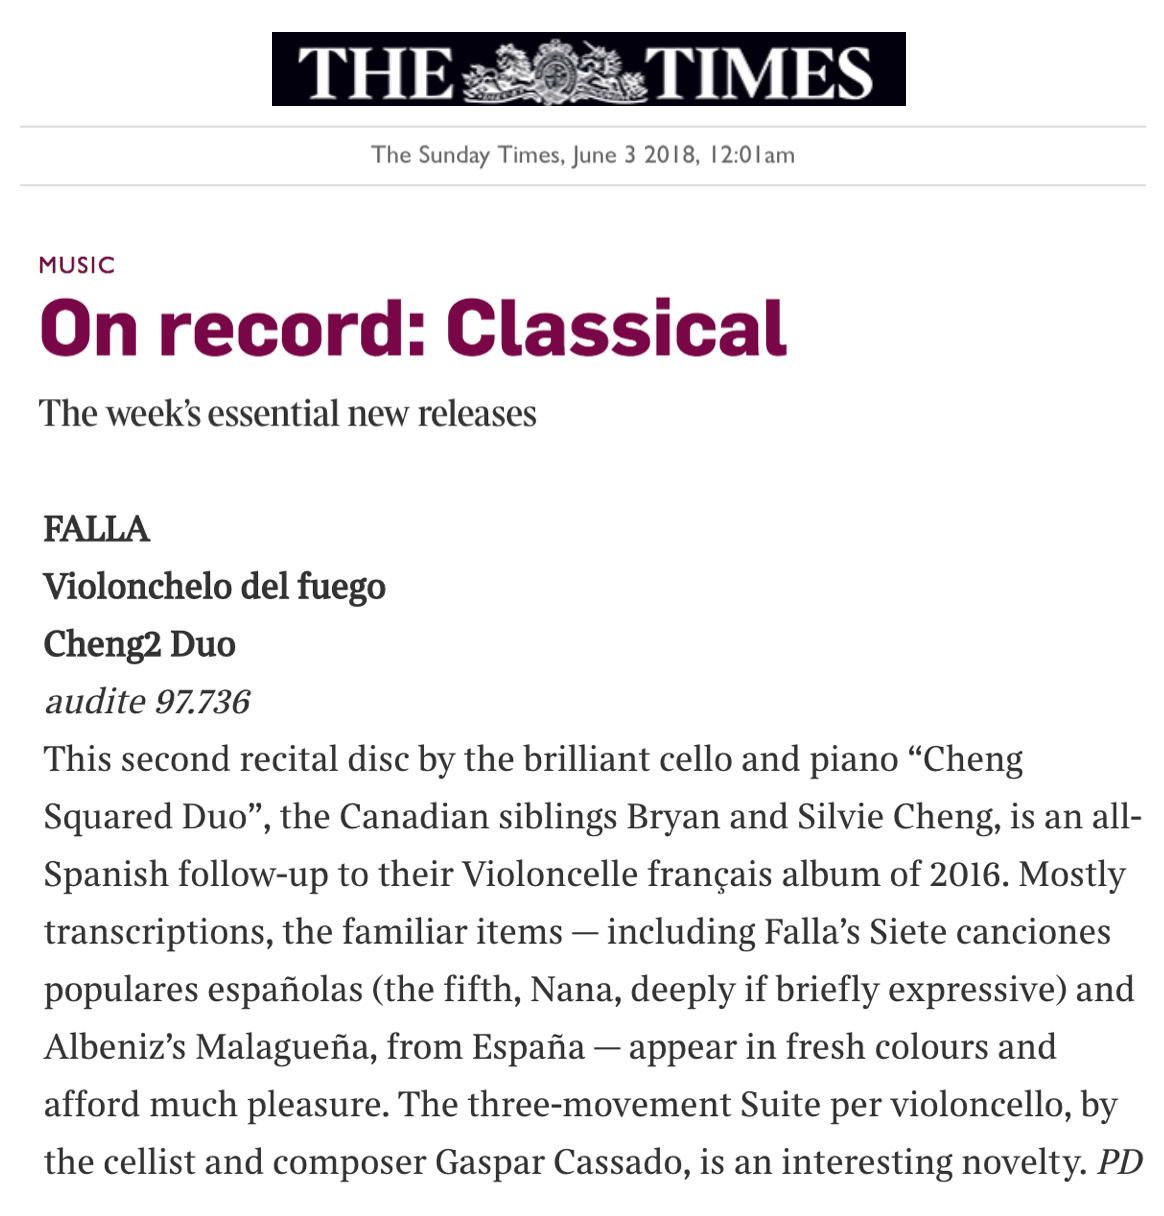 On record: Classical